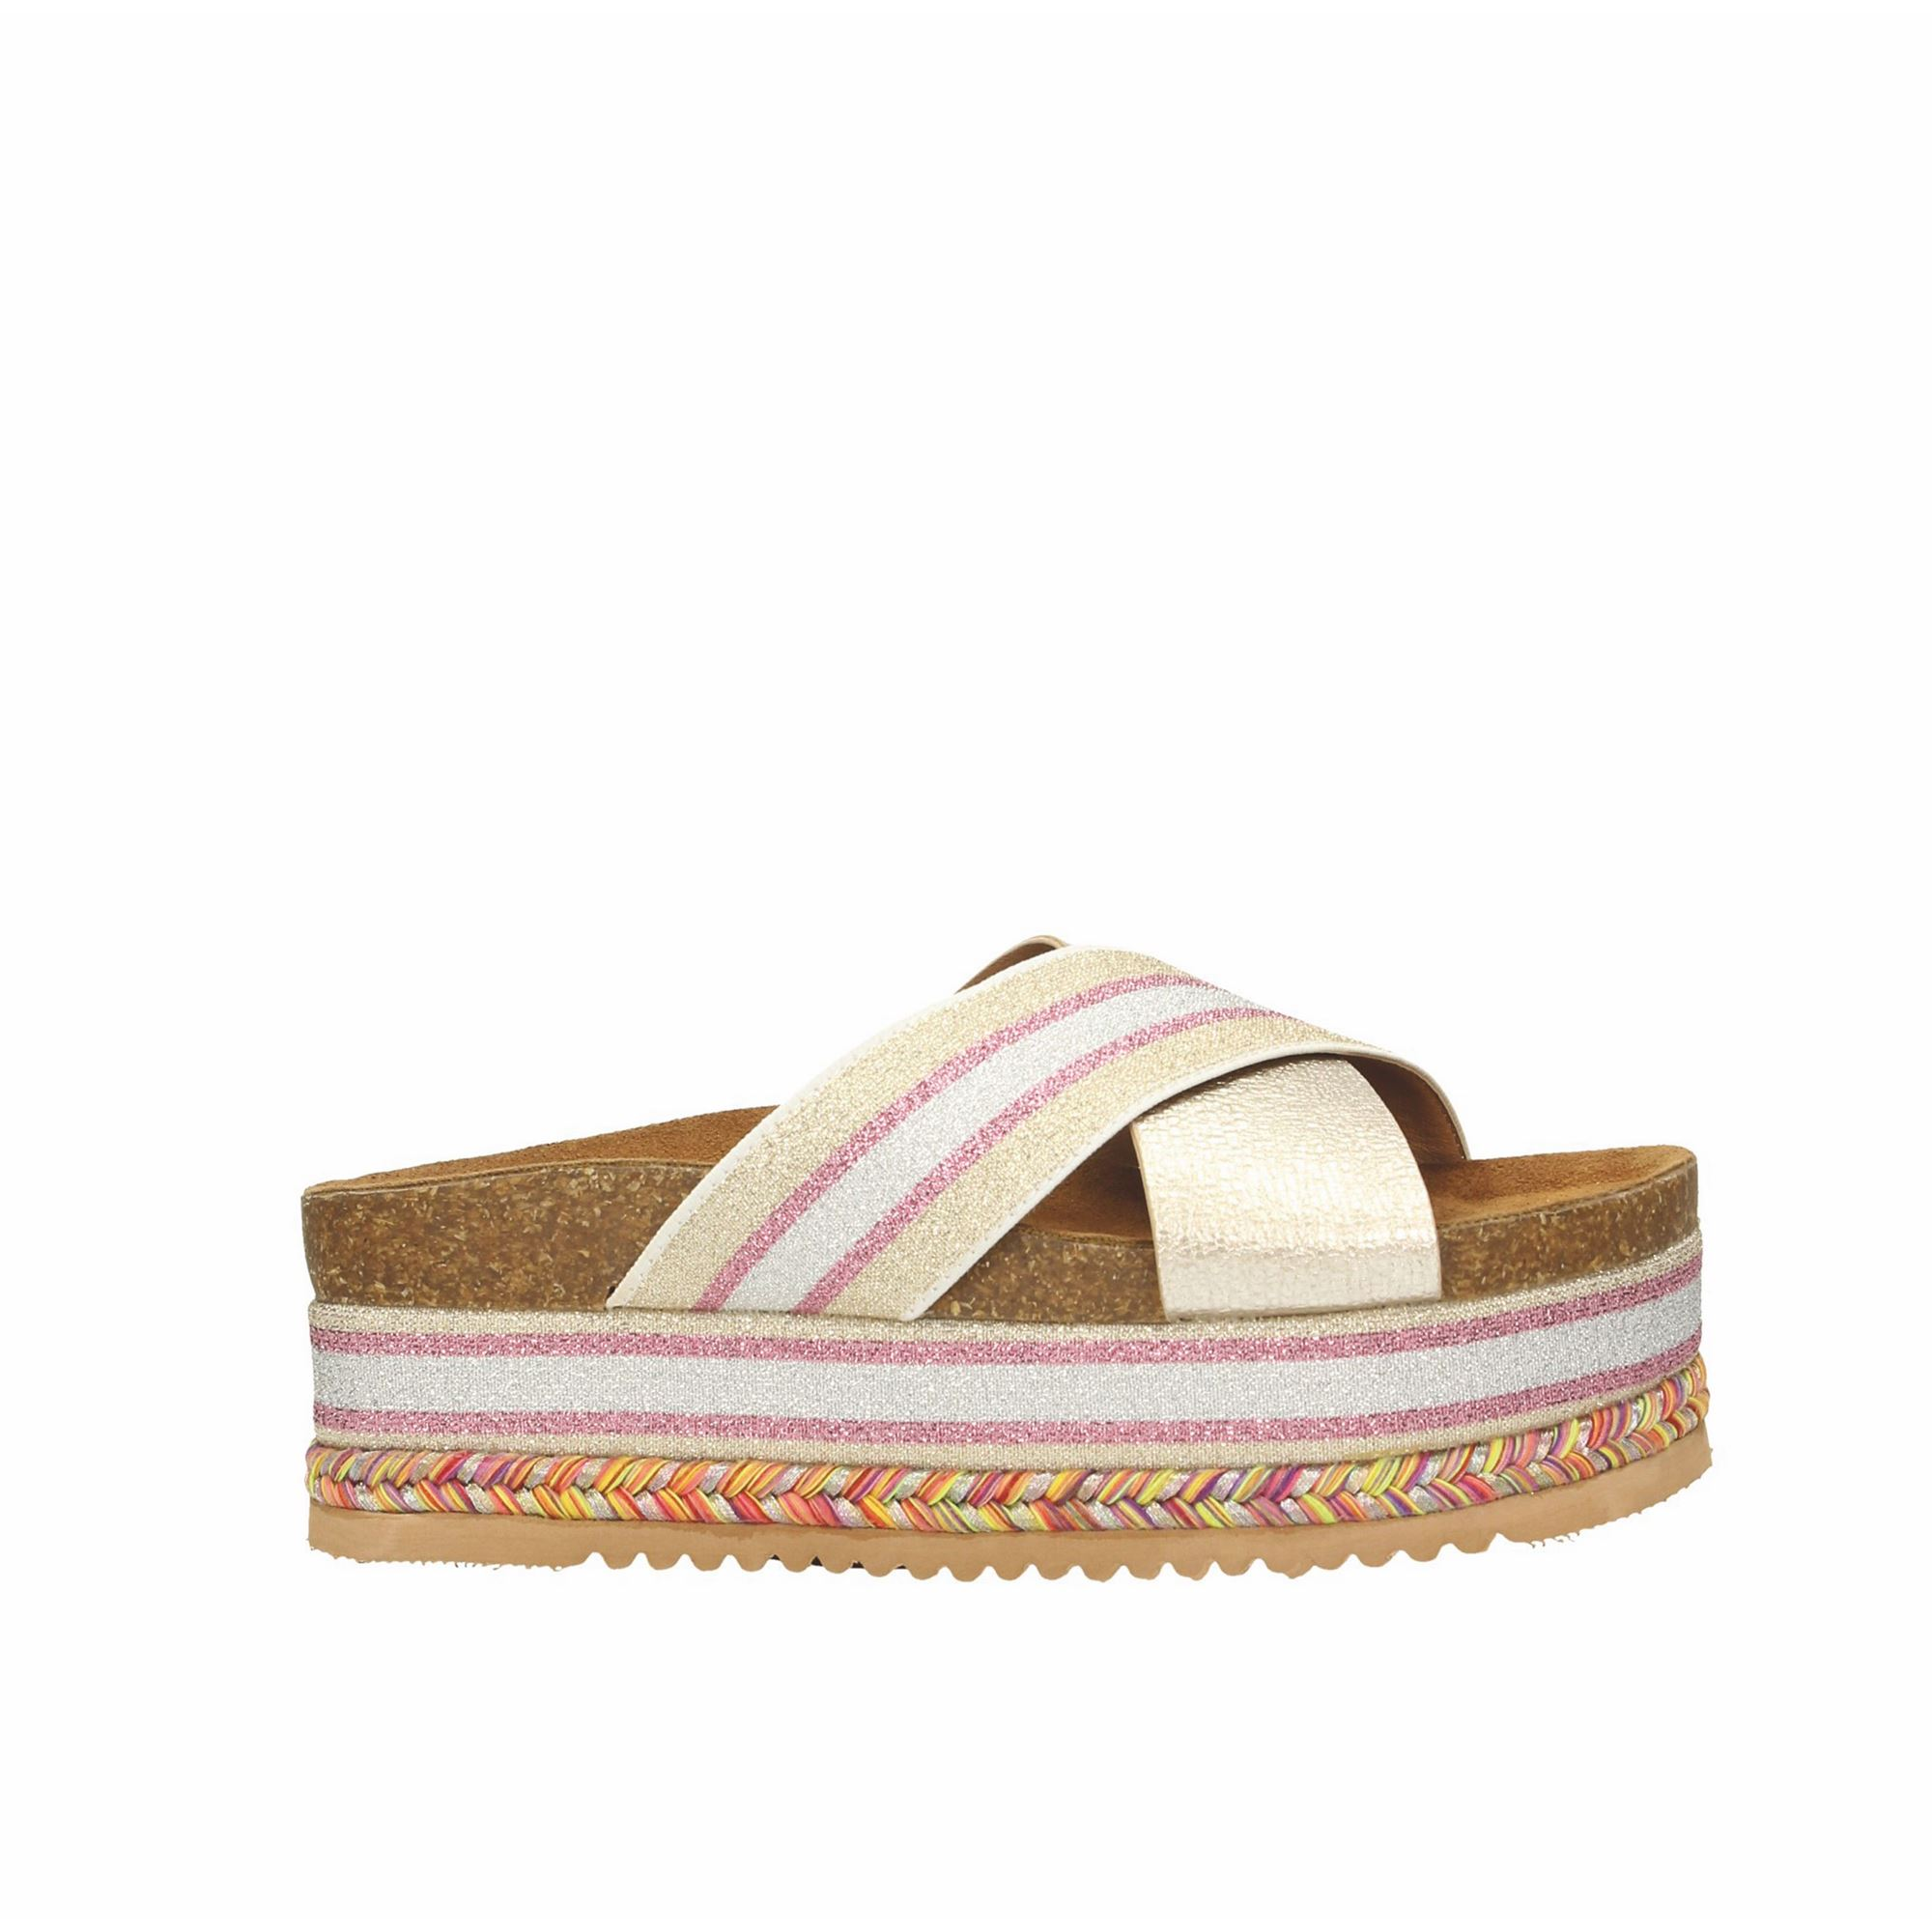 Tata Italia Shoes Woman Sandali Gold 16103-31